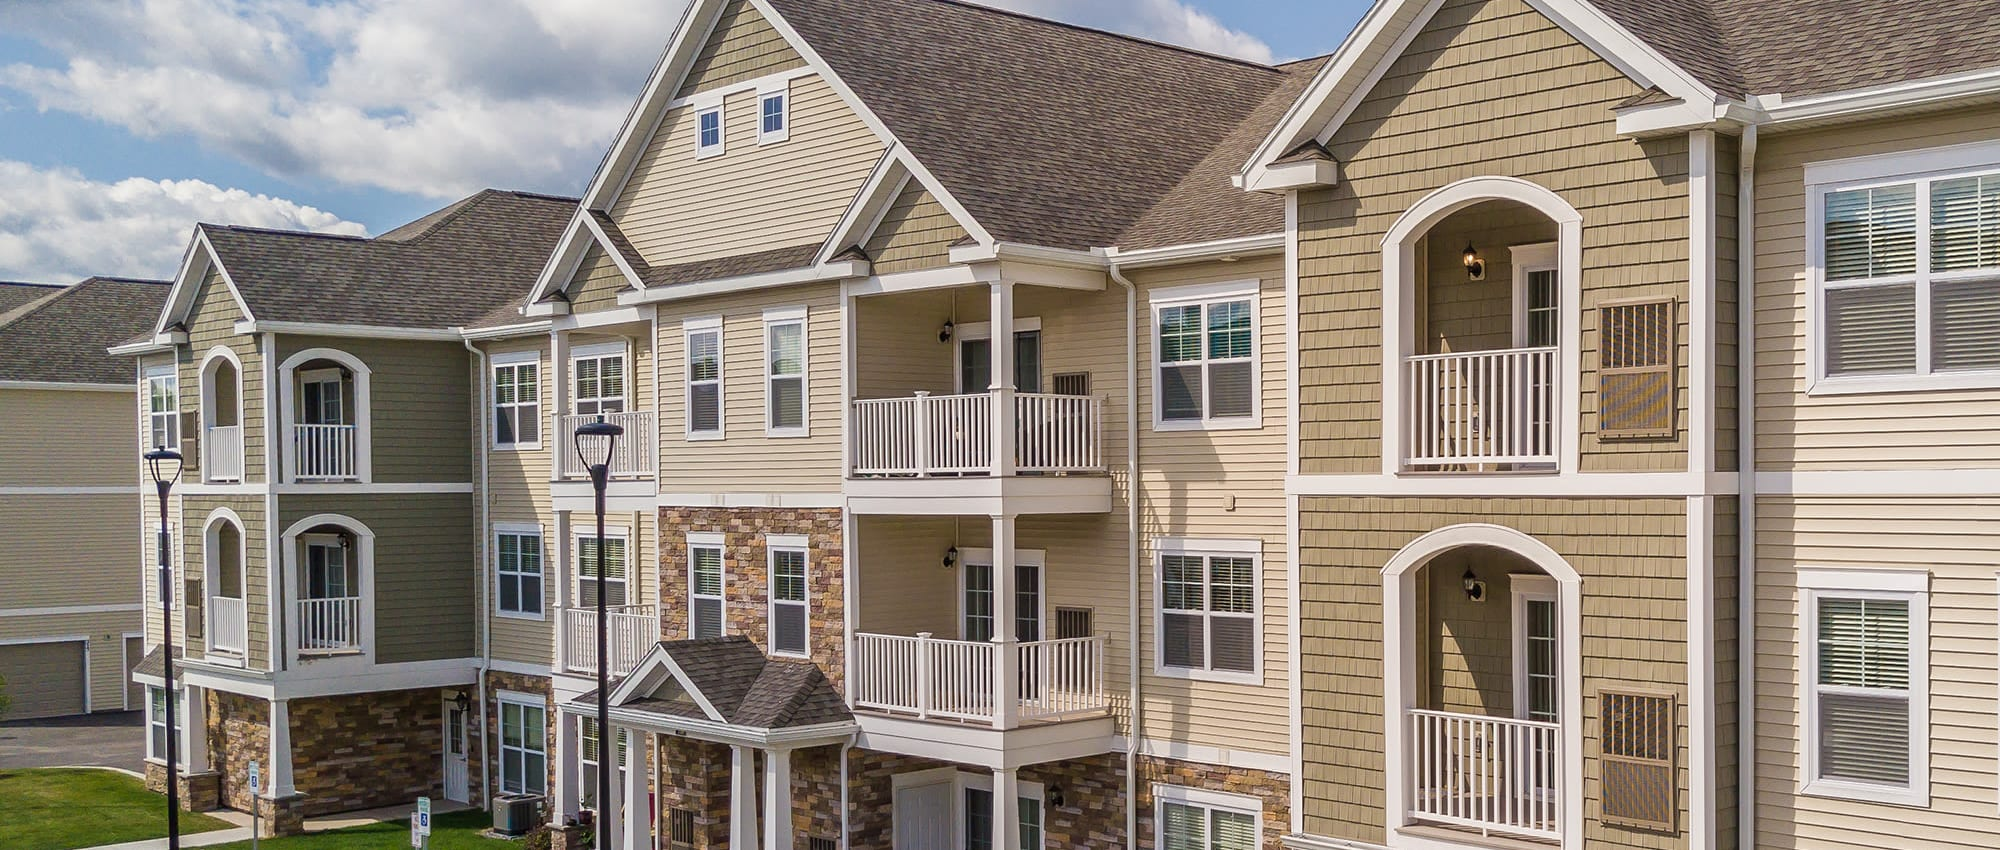 Apartments at The Landings at Meadowood in Baldwinsville, New York